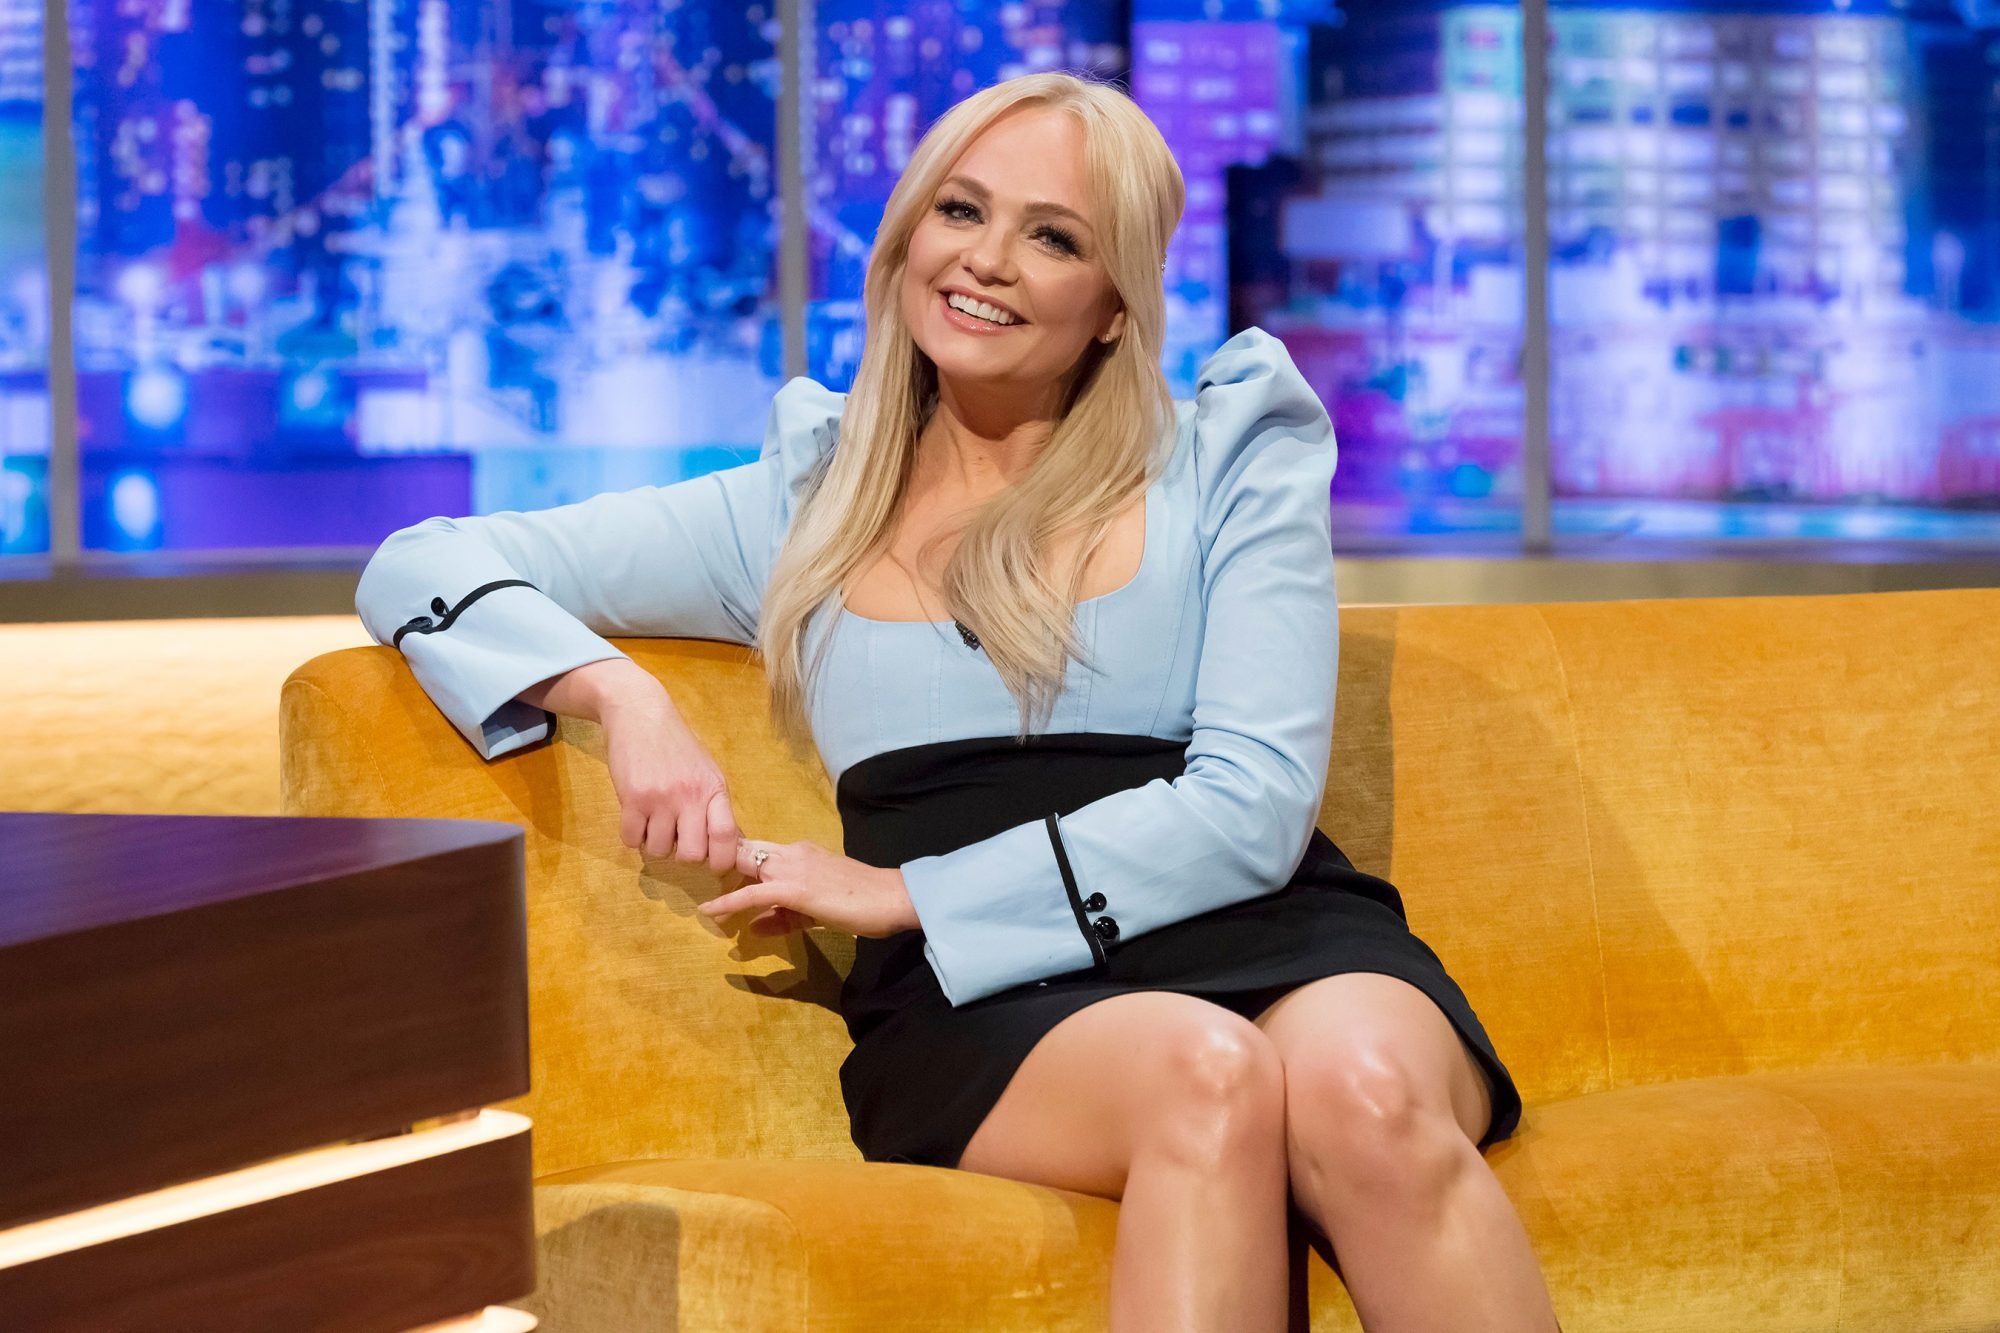 'The Jonathan Ross Show' TV show, Series 14, Episode 7, London, UK - 13 Apr 2019